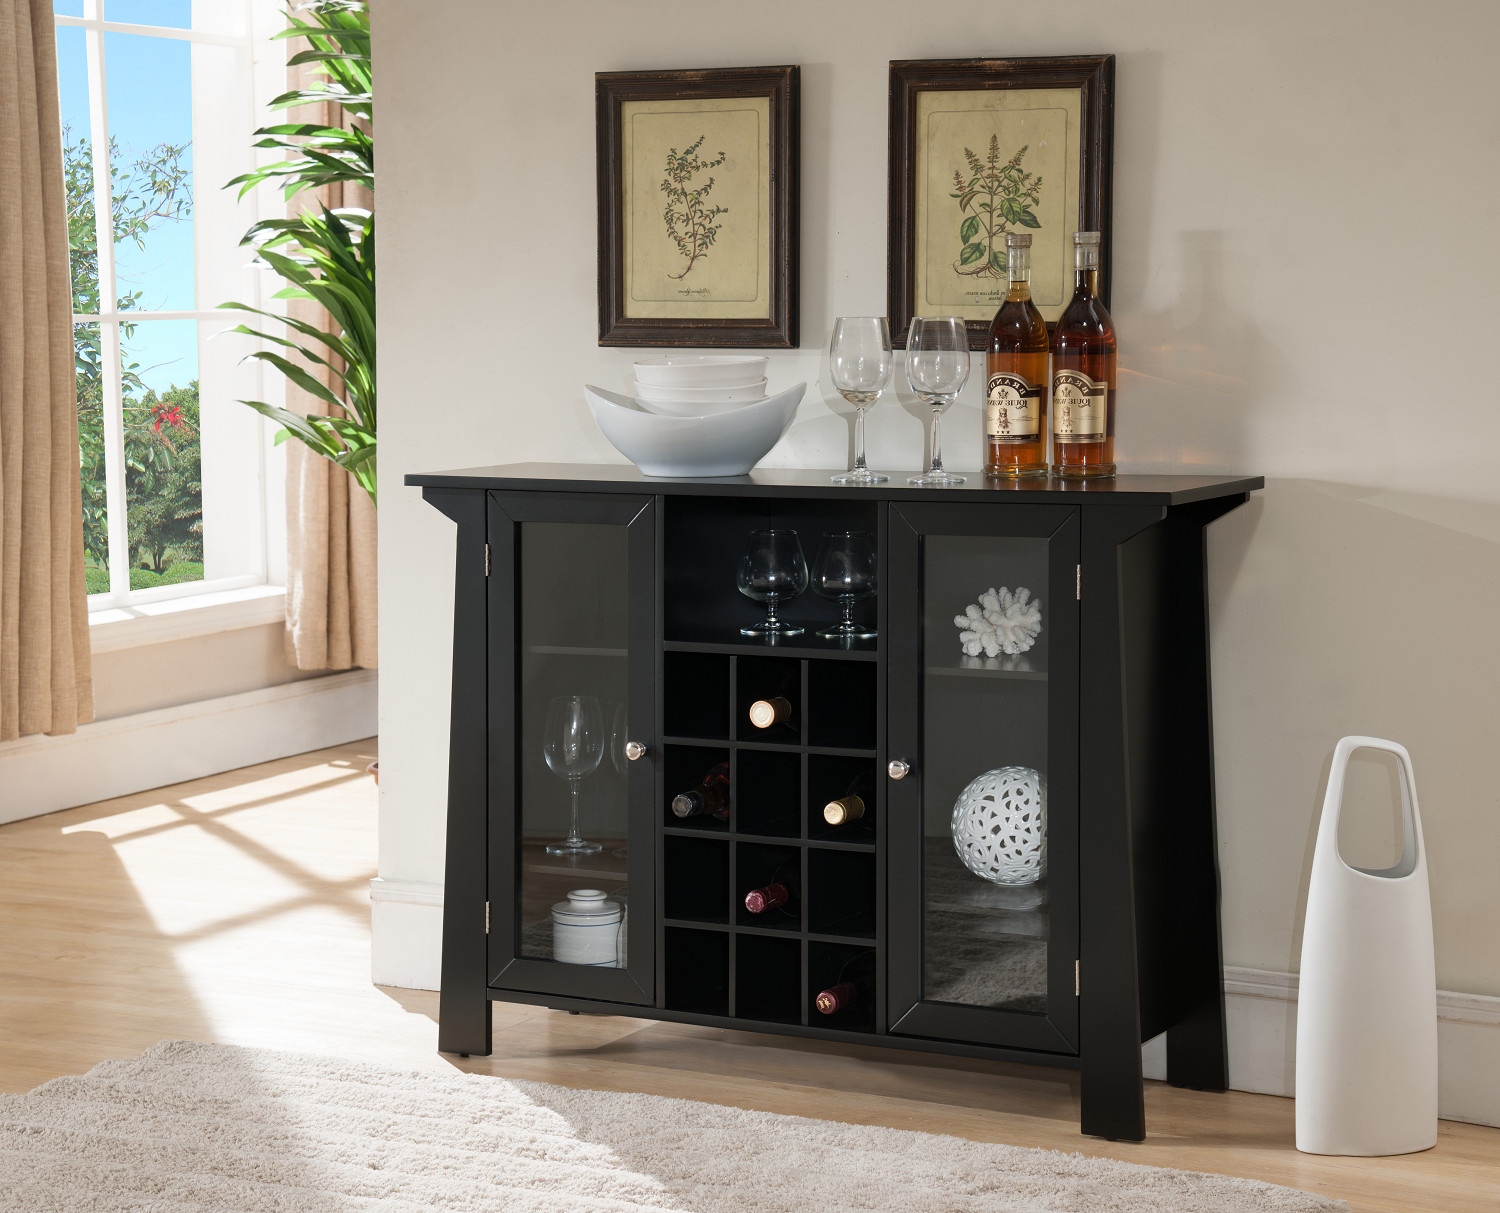 Black Wood Wine Rack Sideboard Buffet Display Console Table With Glass Cabinet Storage Doors & Shelf by unknown